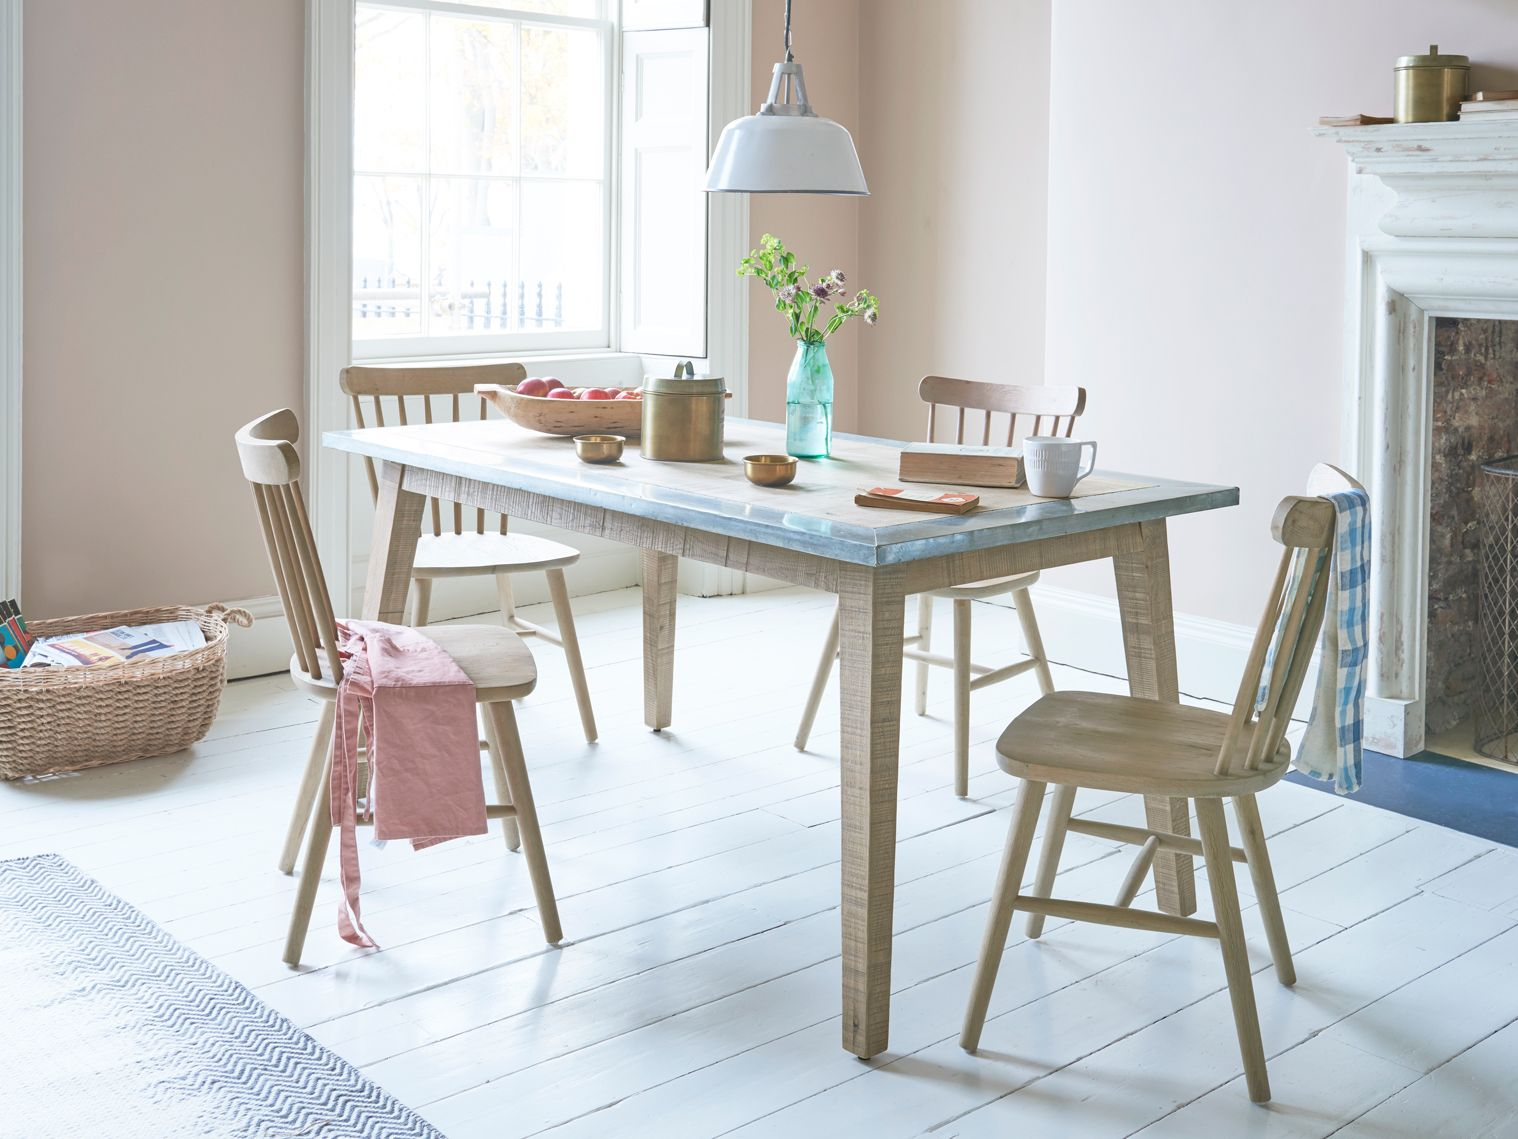 kitchen zinc table with our natterbox chairs dining table zinc dining tables dining table in on kitchen zinc id=95728